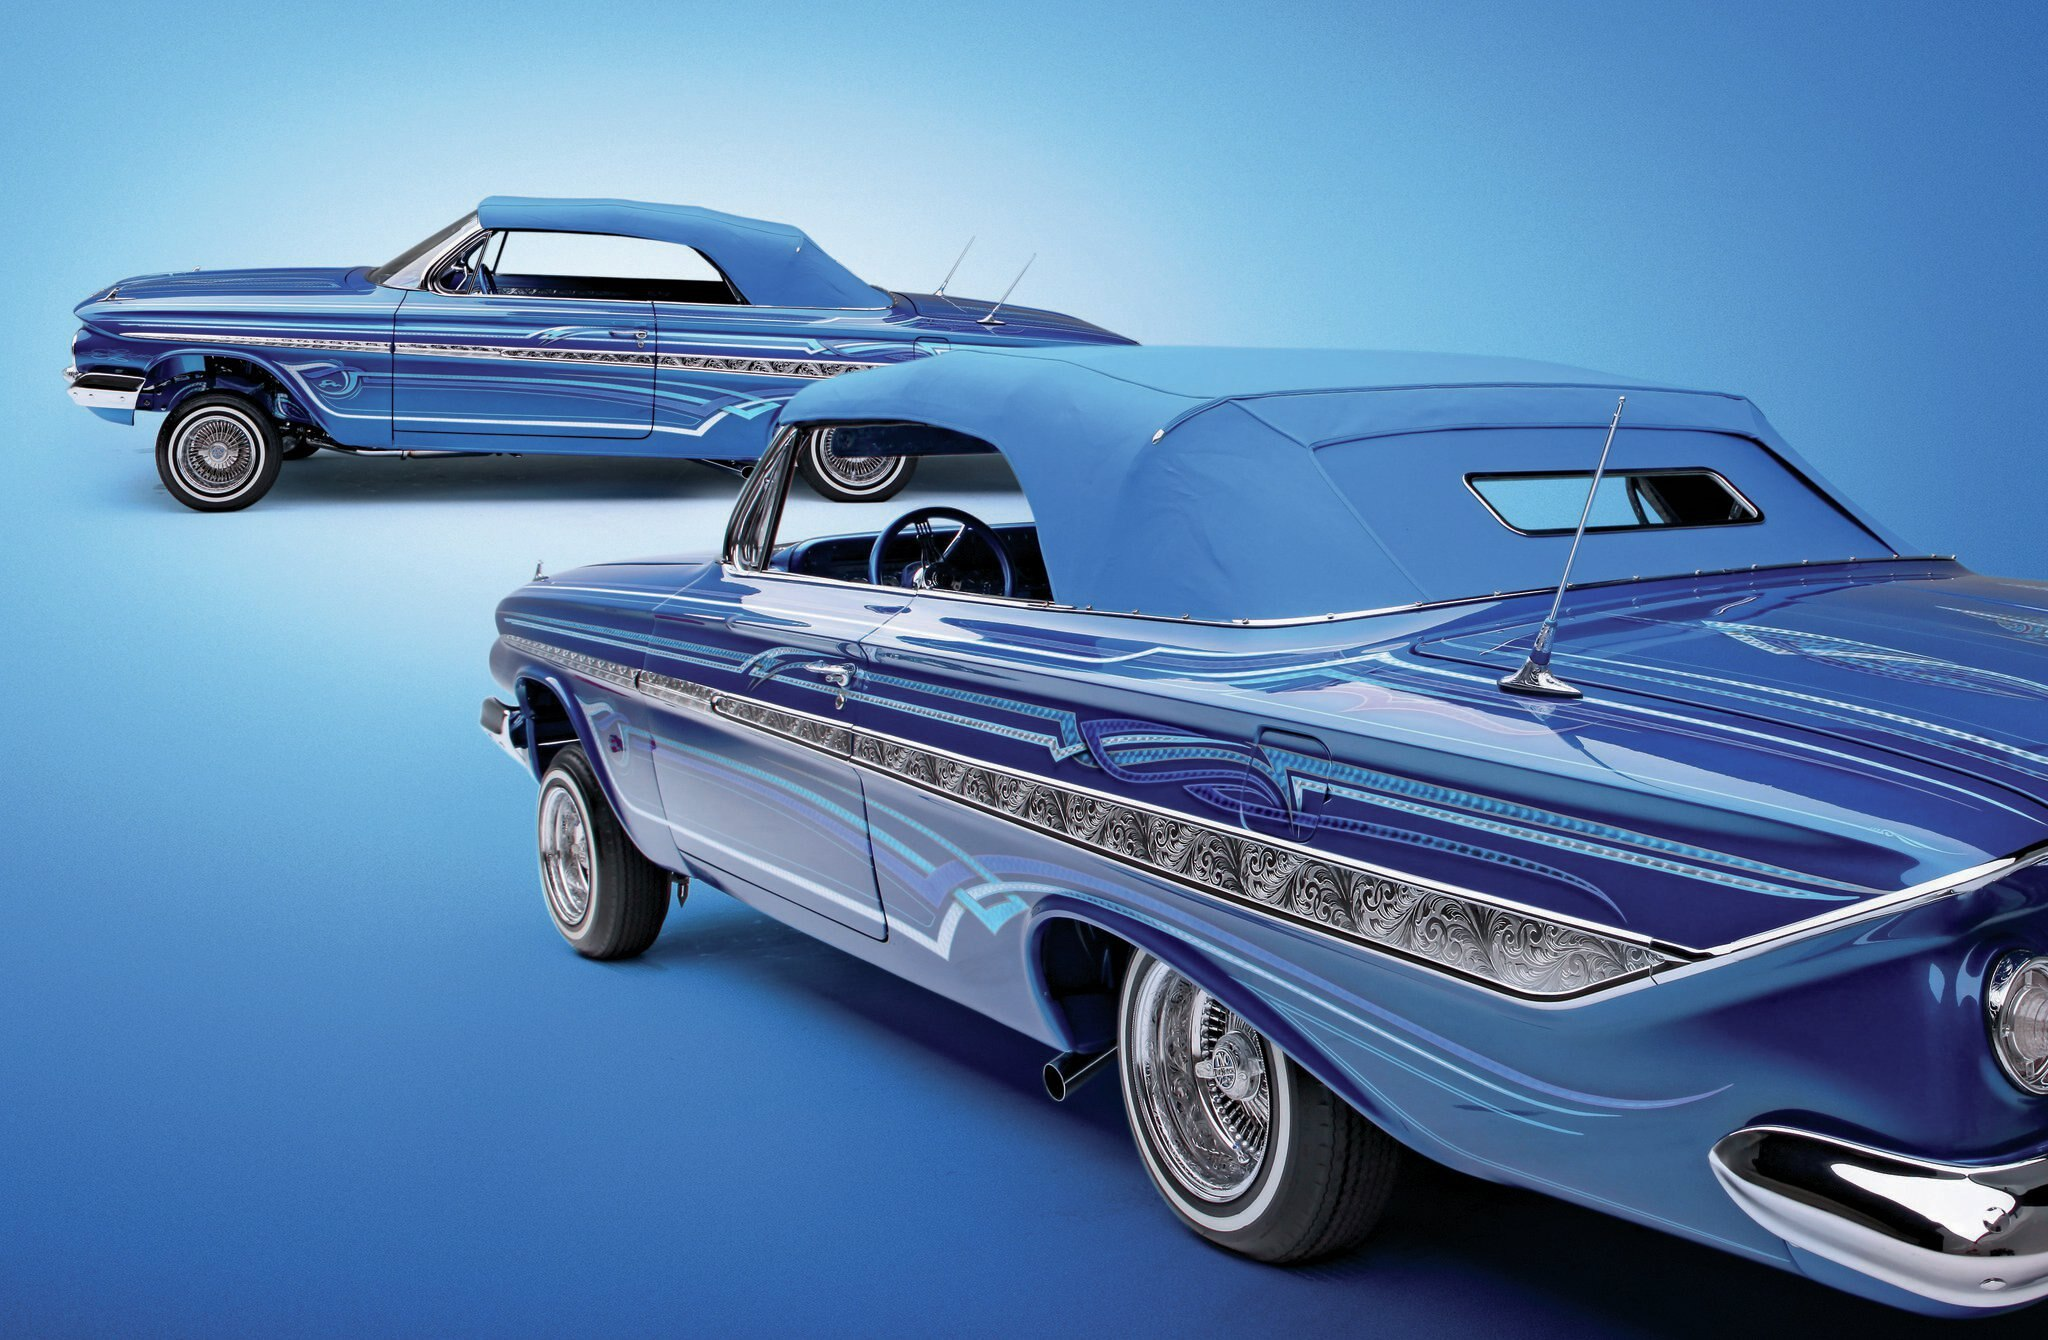 1961 Chevrolet Impala Convertible   The Only One 2 18